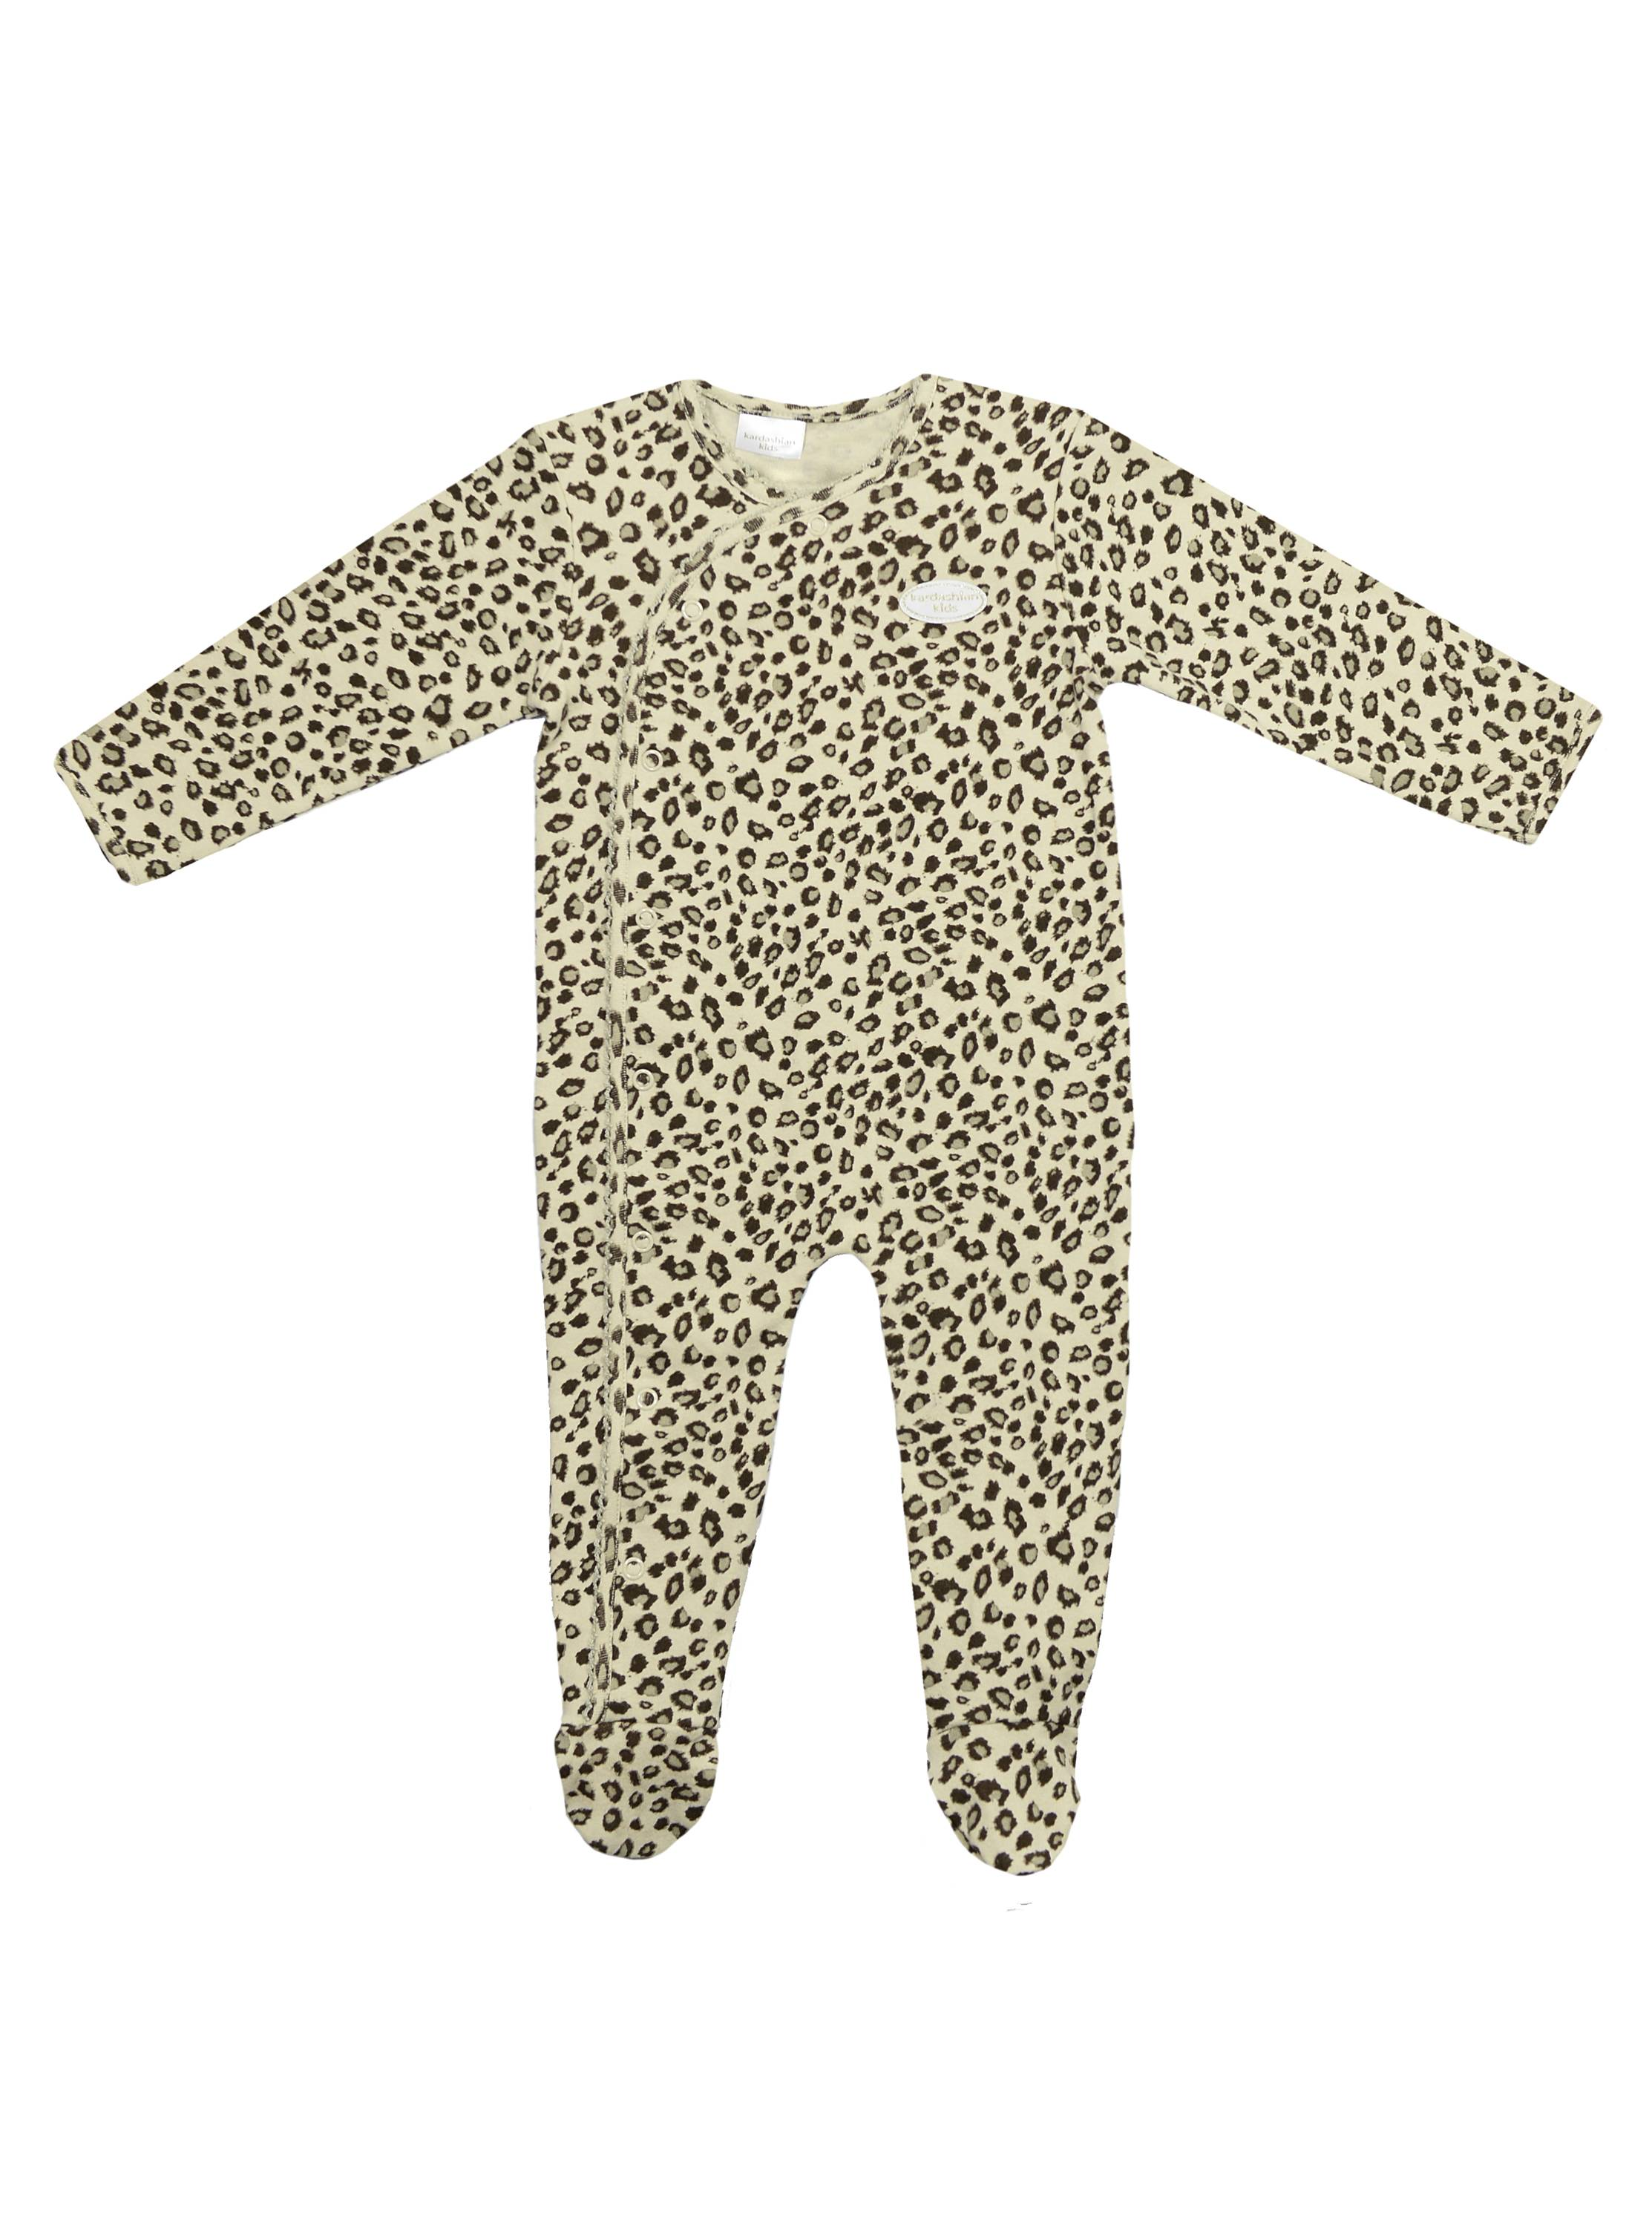 The new line from the Kardashian Kids Collection is for baby girls up to 24 months.